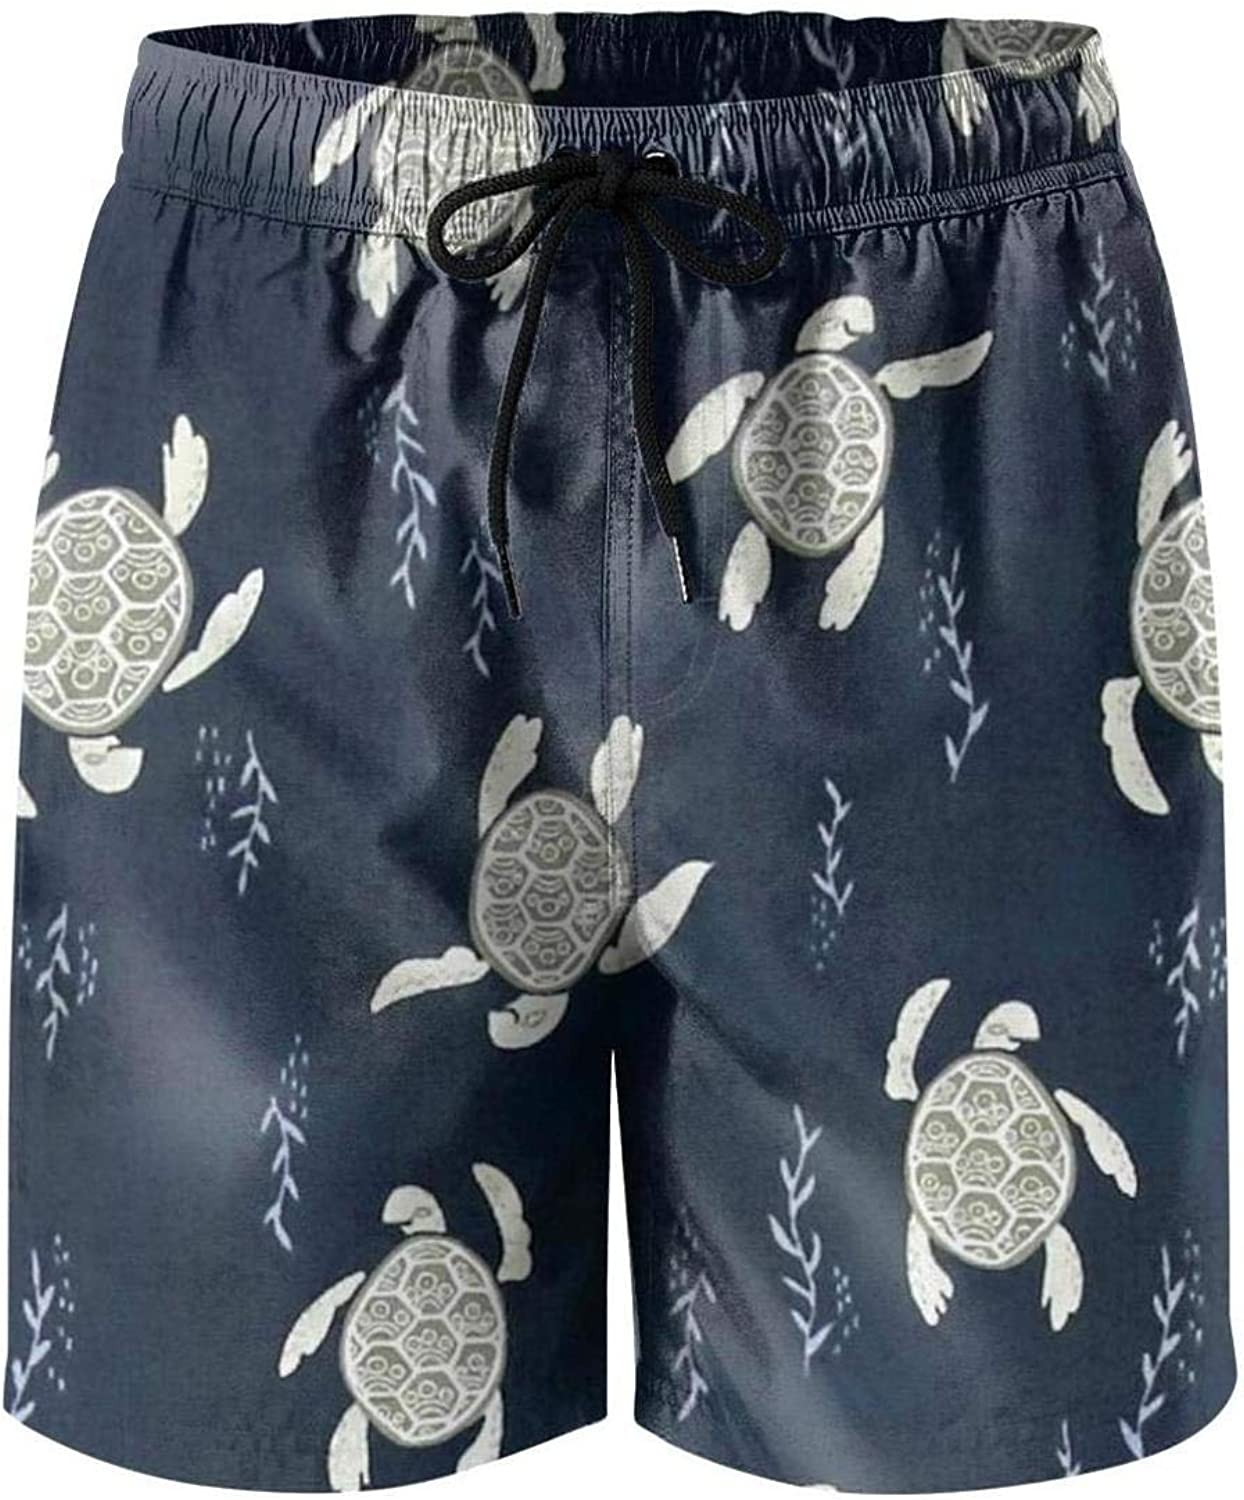 Navy Whales Pattern Young Men Swimming Trunks Summer Personalized Quick Dry Swim Trunks